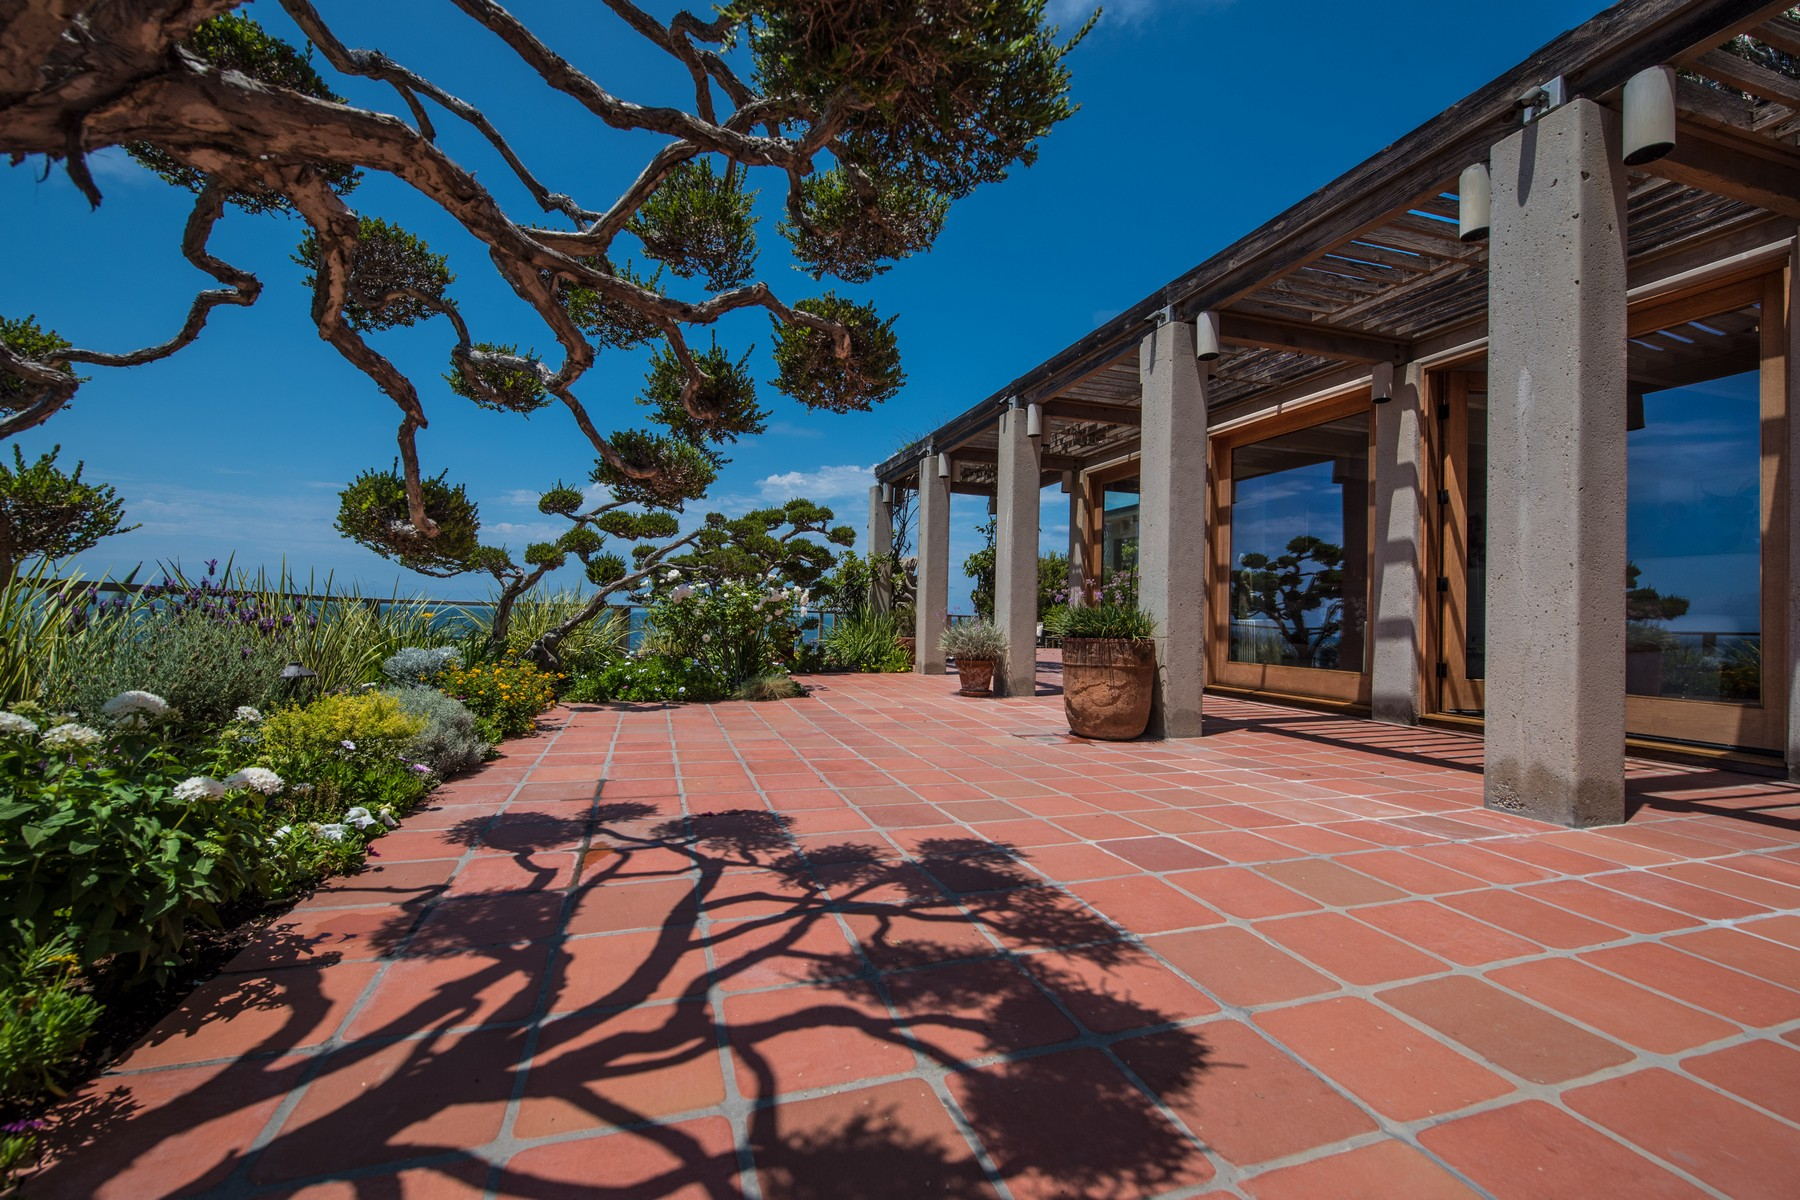 Additional photo for property listing at 310 Forward Street  La Jolla, Калифорния 92037 Соединенные Штаты